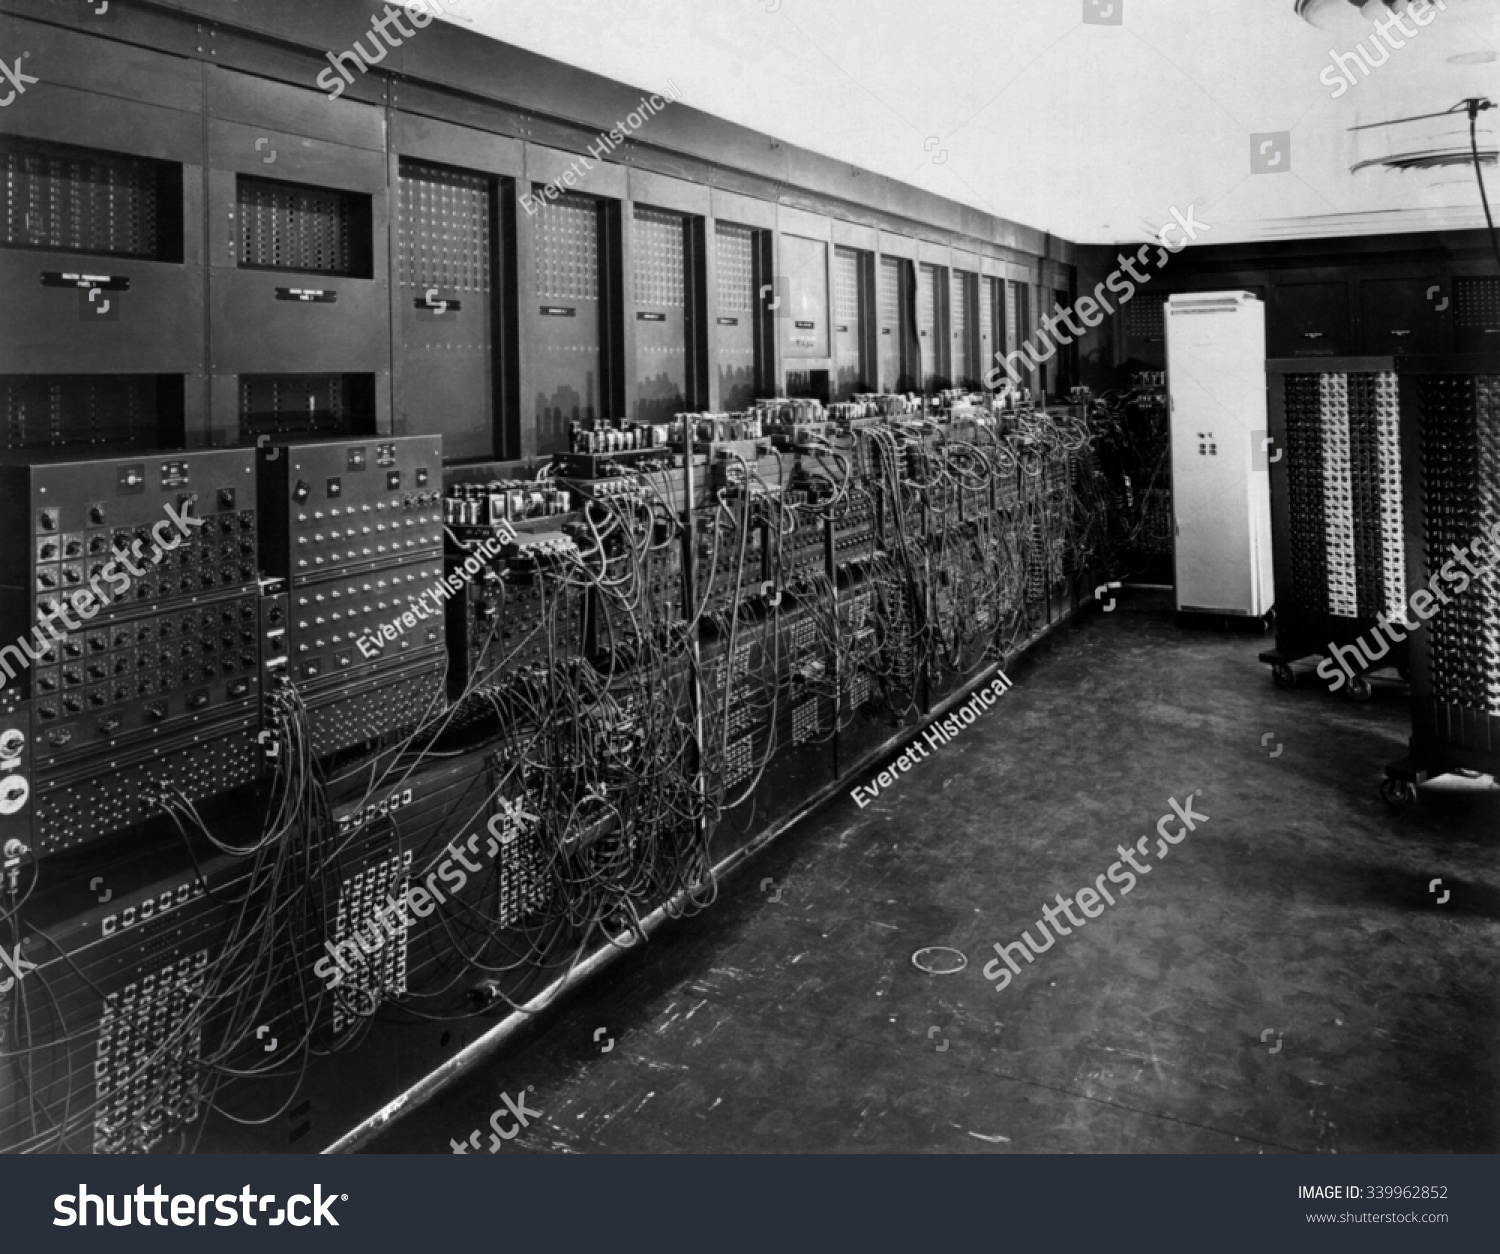 Eniac Computer Was The First General-Purpose Electronic Digital Computer. 'Electronic Numerical